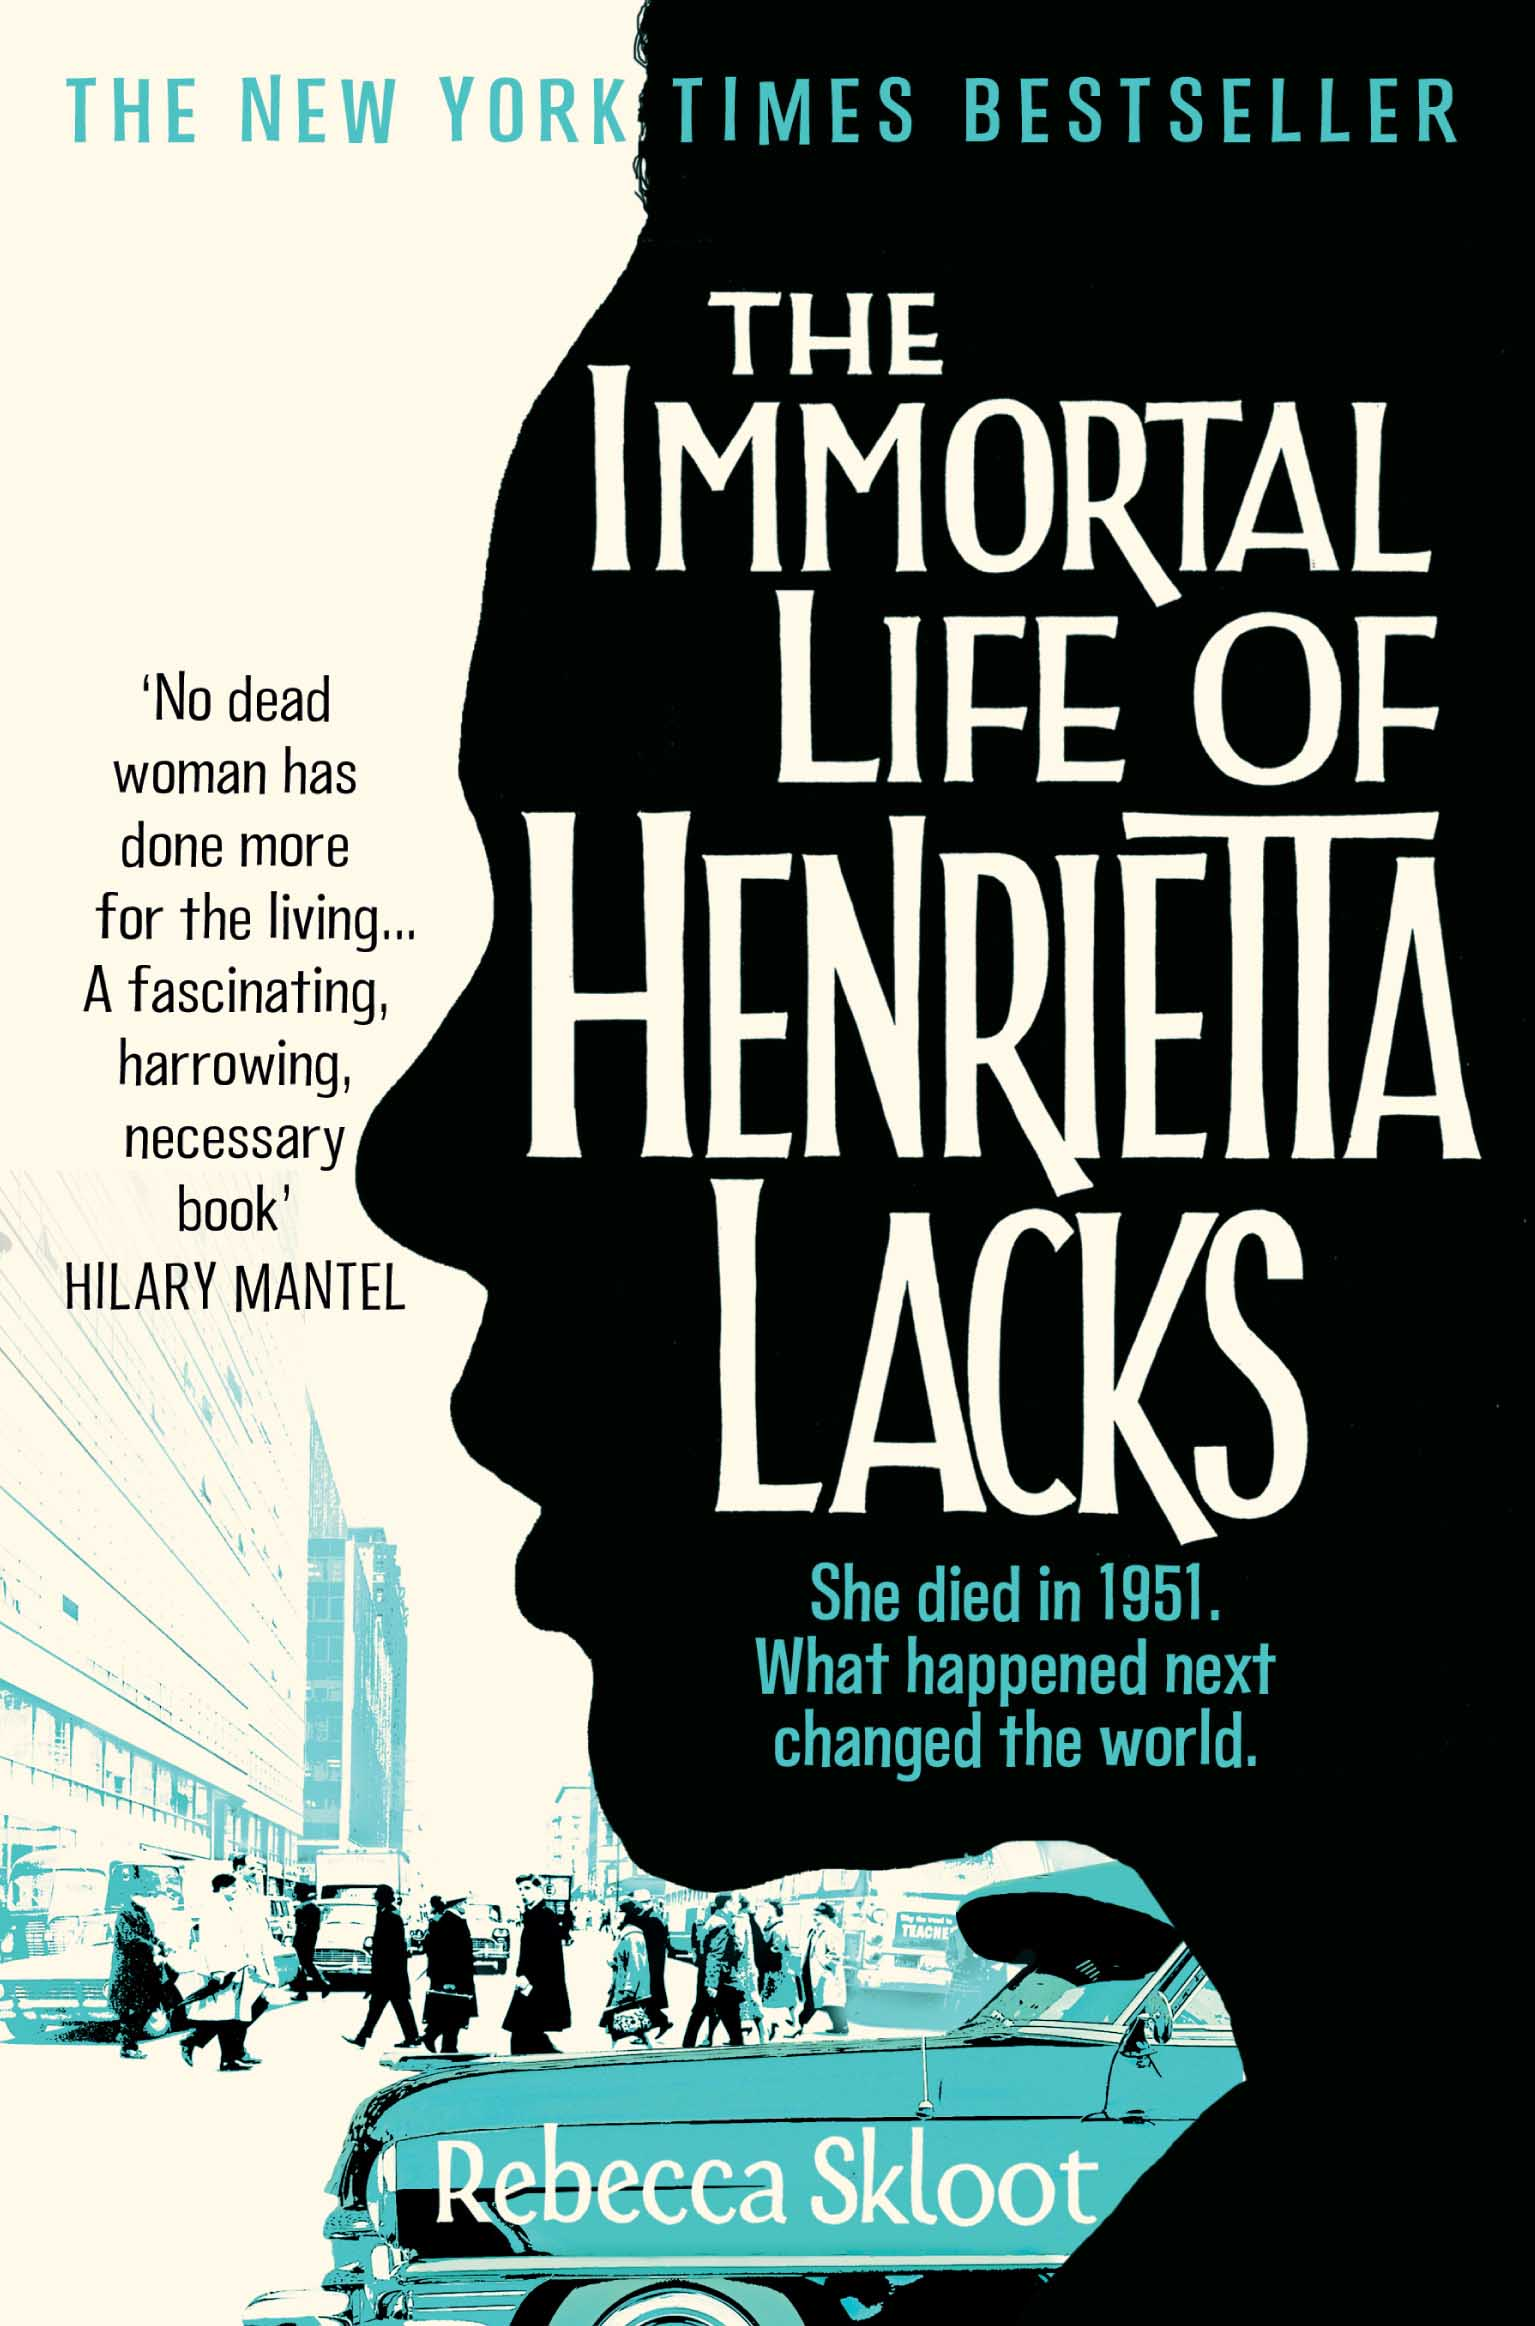 The immortal life of henrietta lacks summary essay